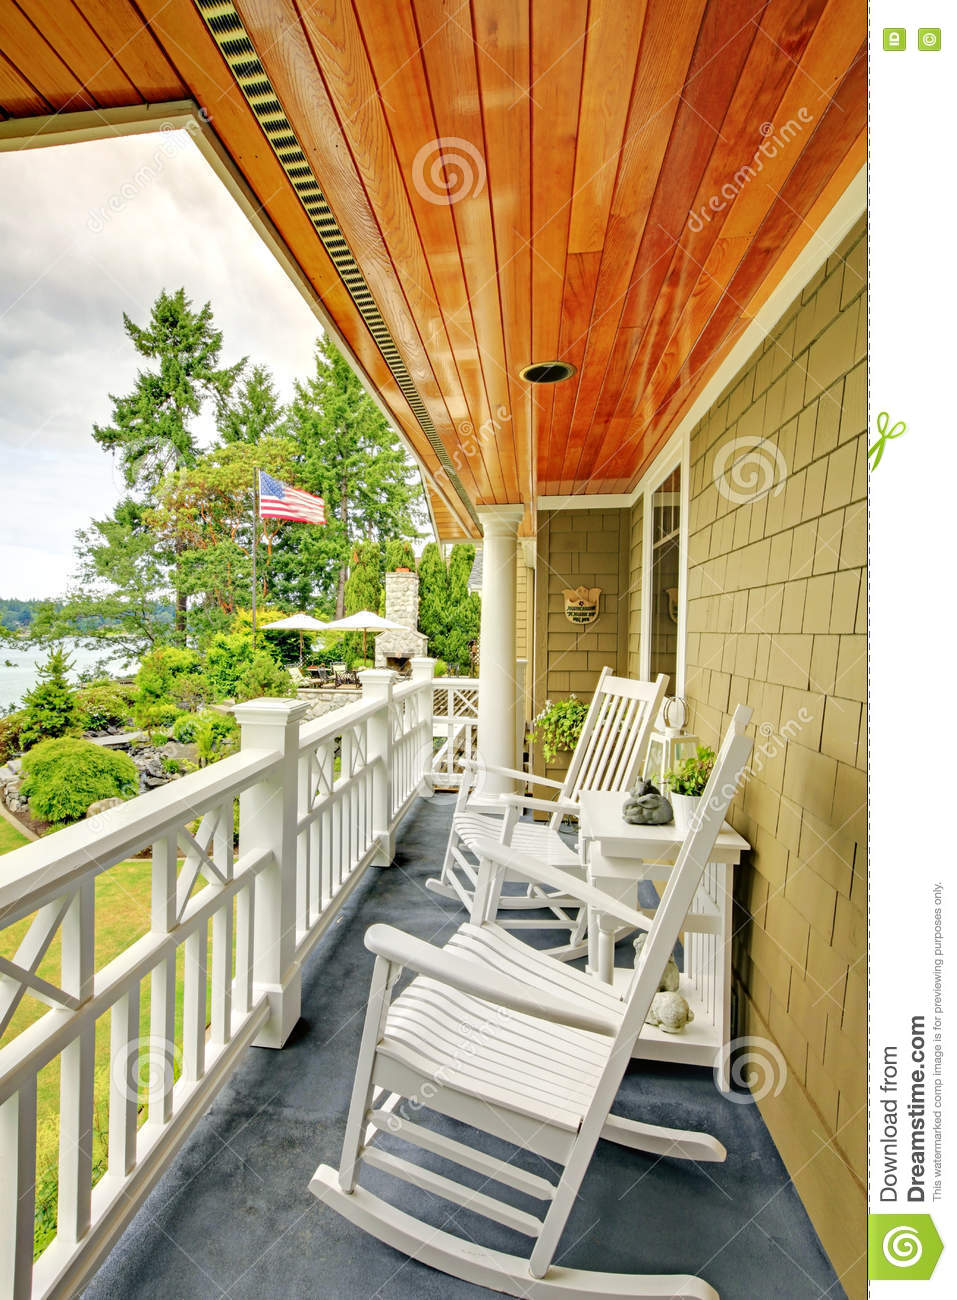 Small Long Balcony Home Exterior With Rocking Chairs And